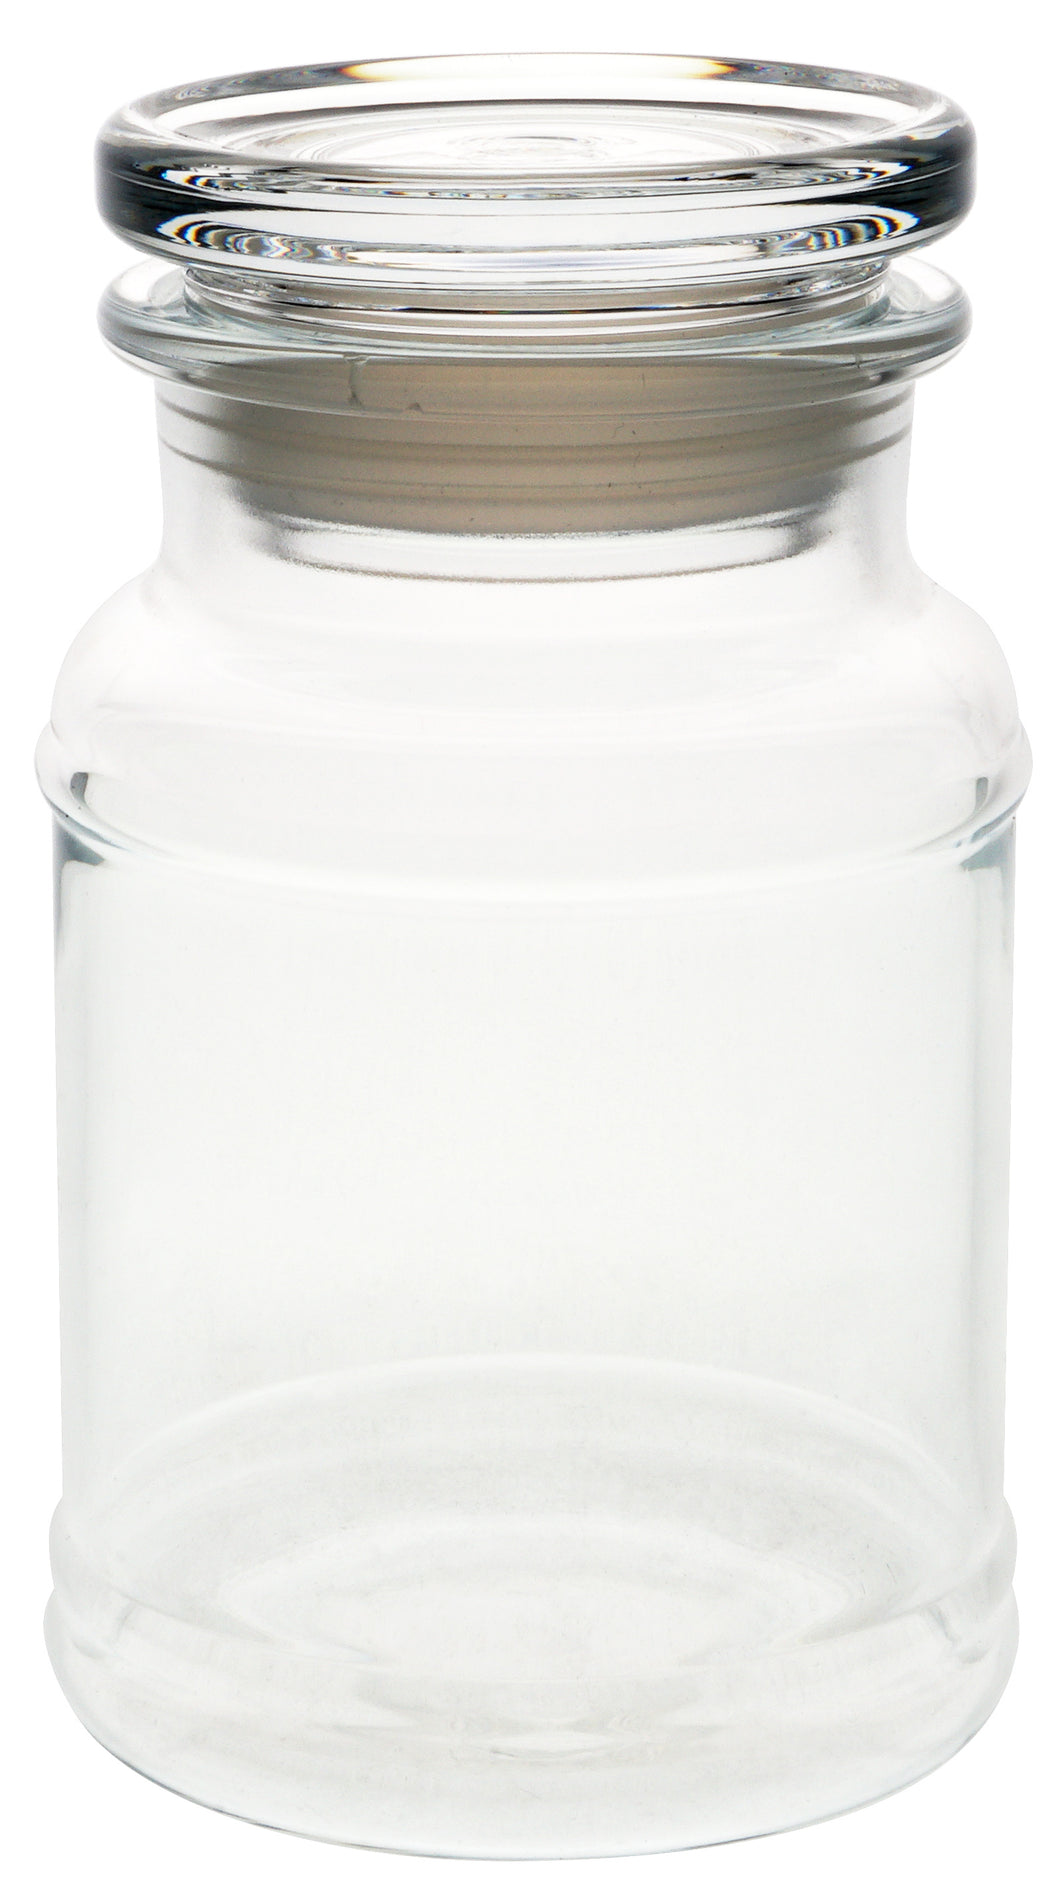 Unbreakable Storage jar 20